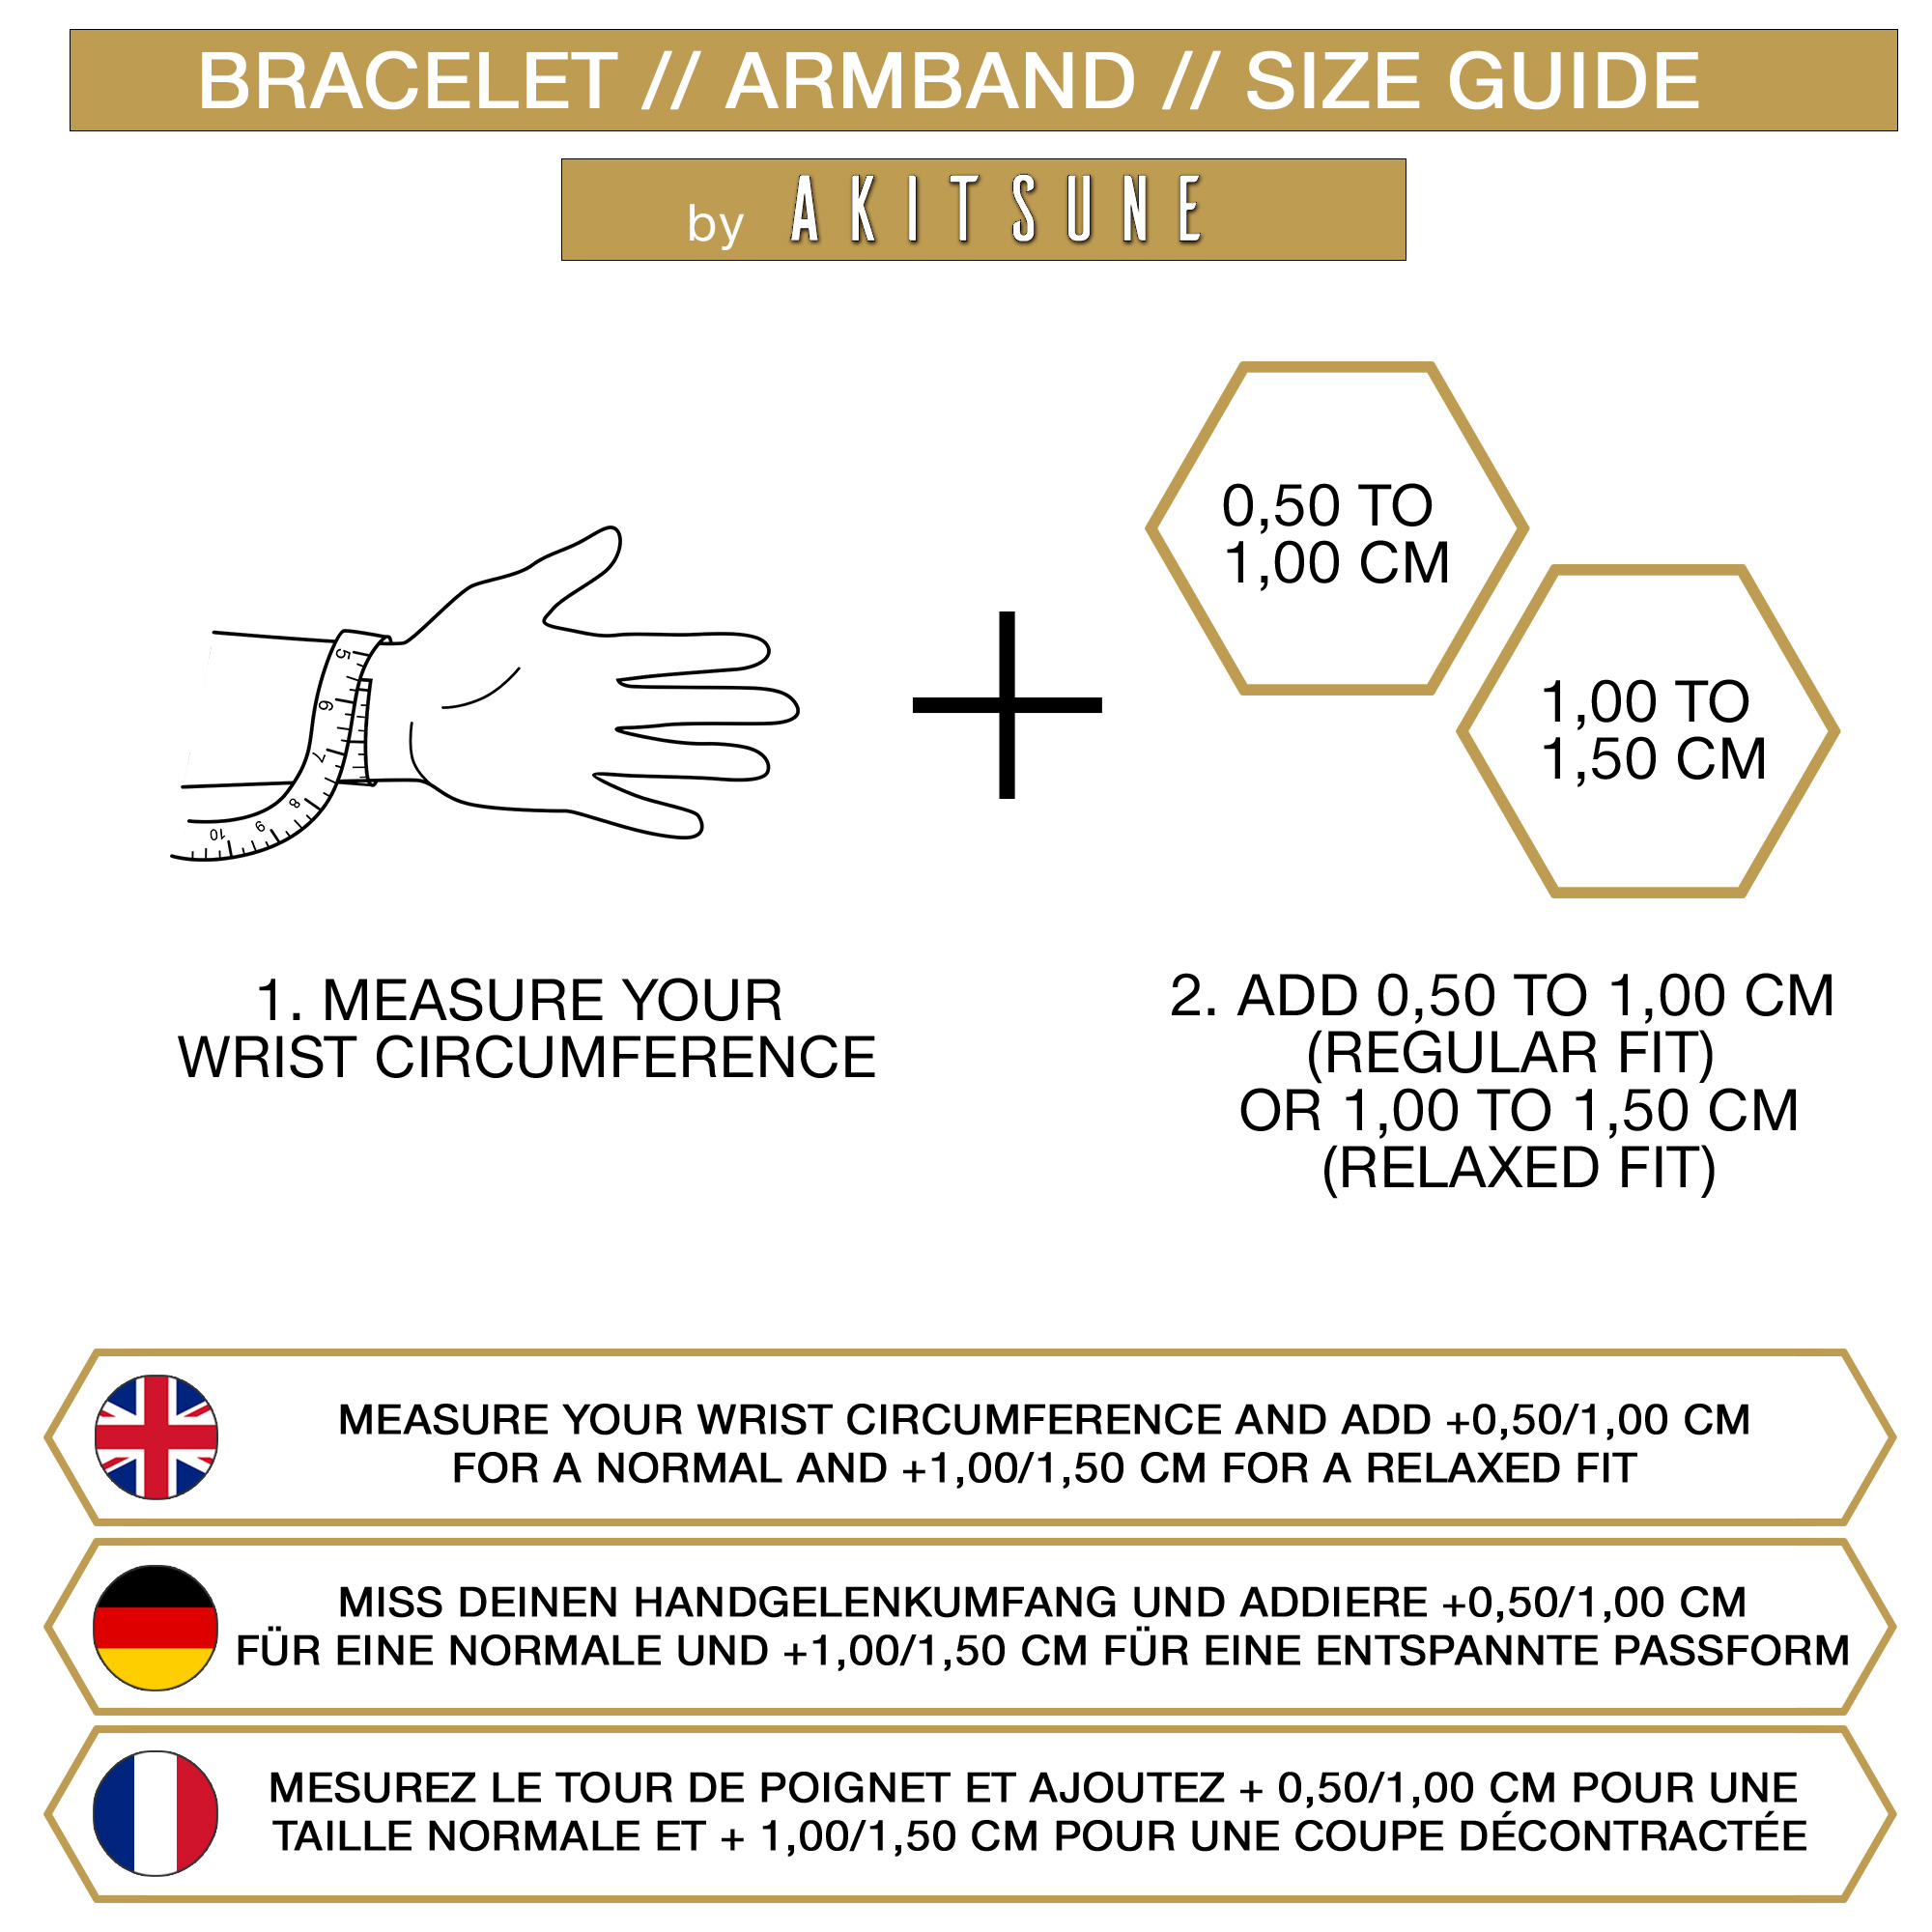 Beaded-Bracelets-Size-Chart-Amazon-0-50-1-00-to-1-00-1-50cm